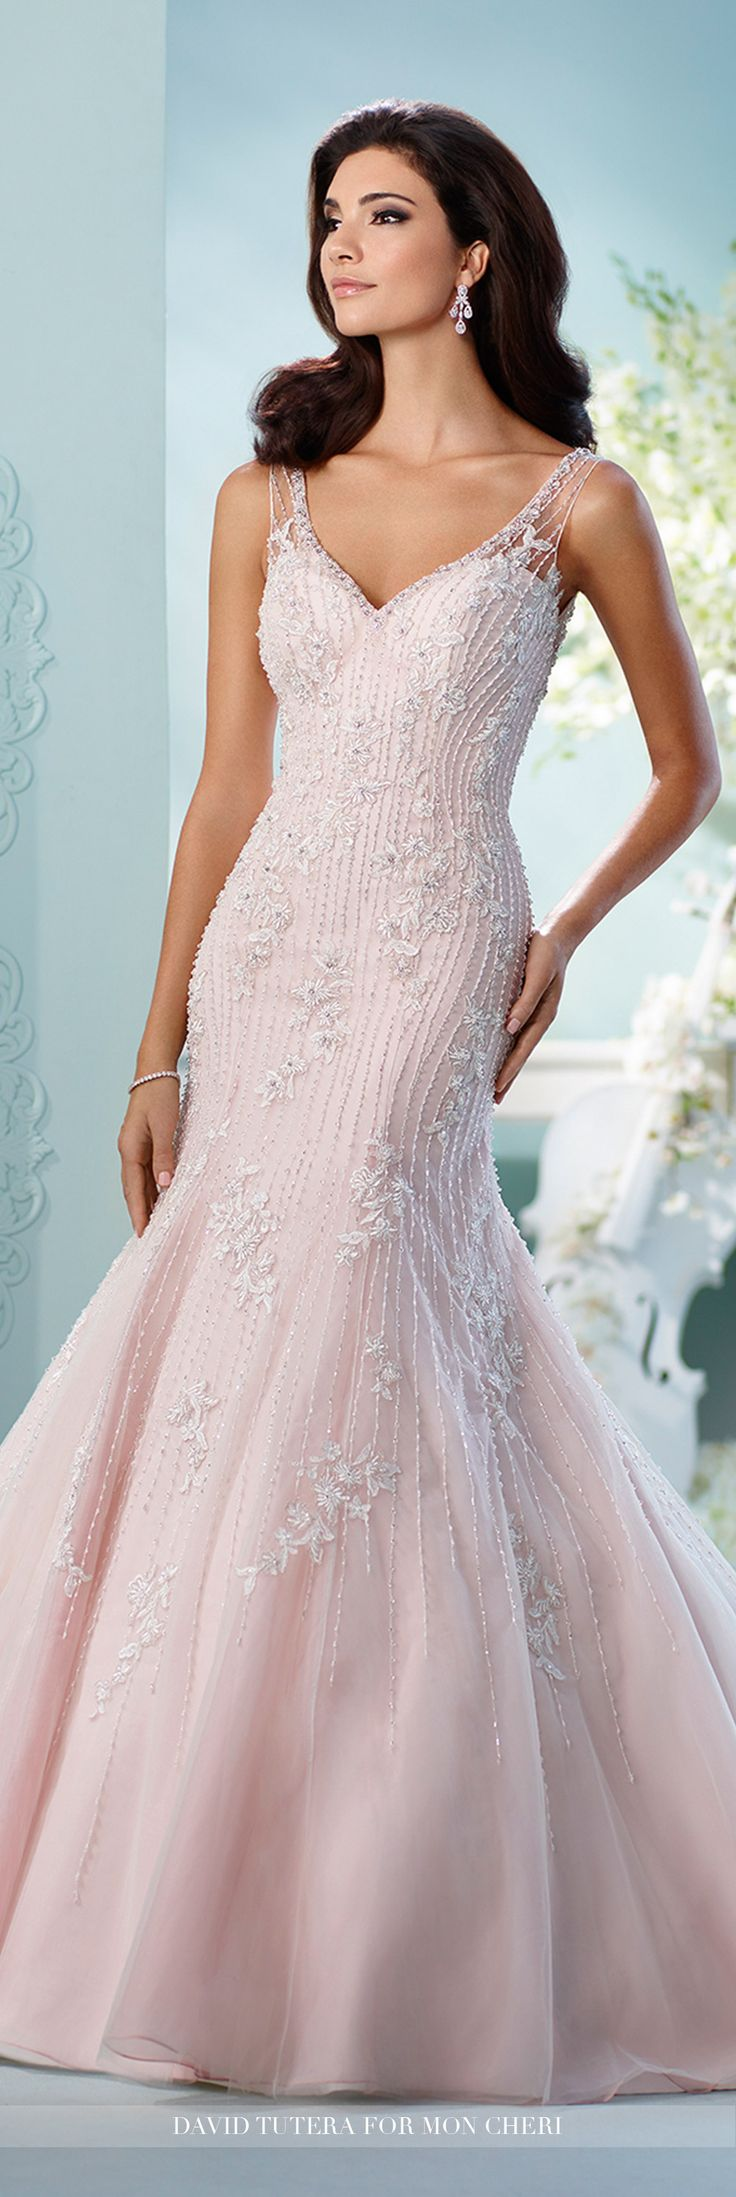 Best 25 trumpet gown ideas on pinterest illusion style for Trumpet style wedding dresses